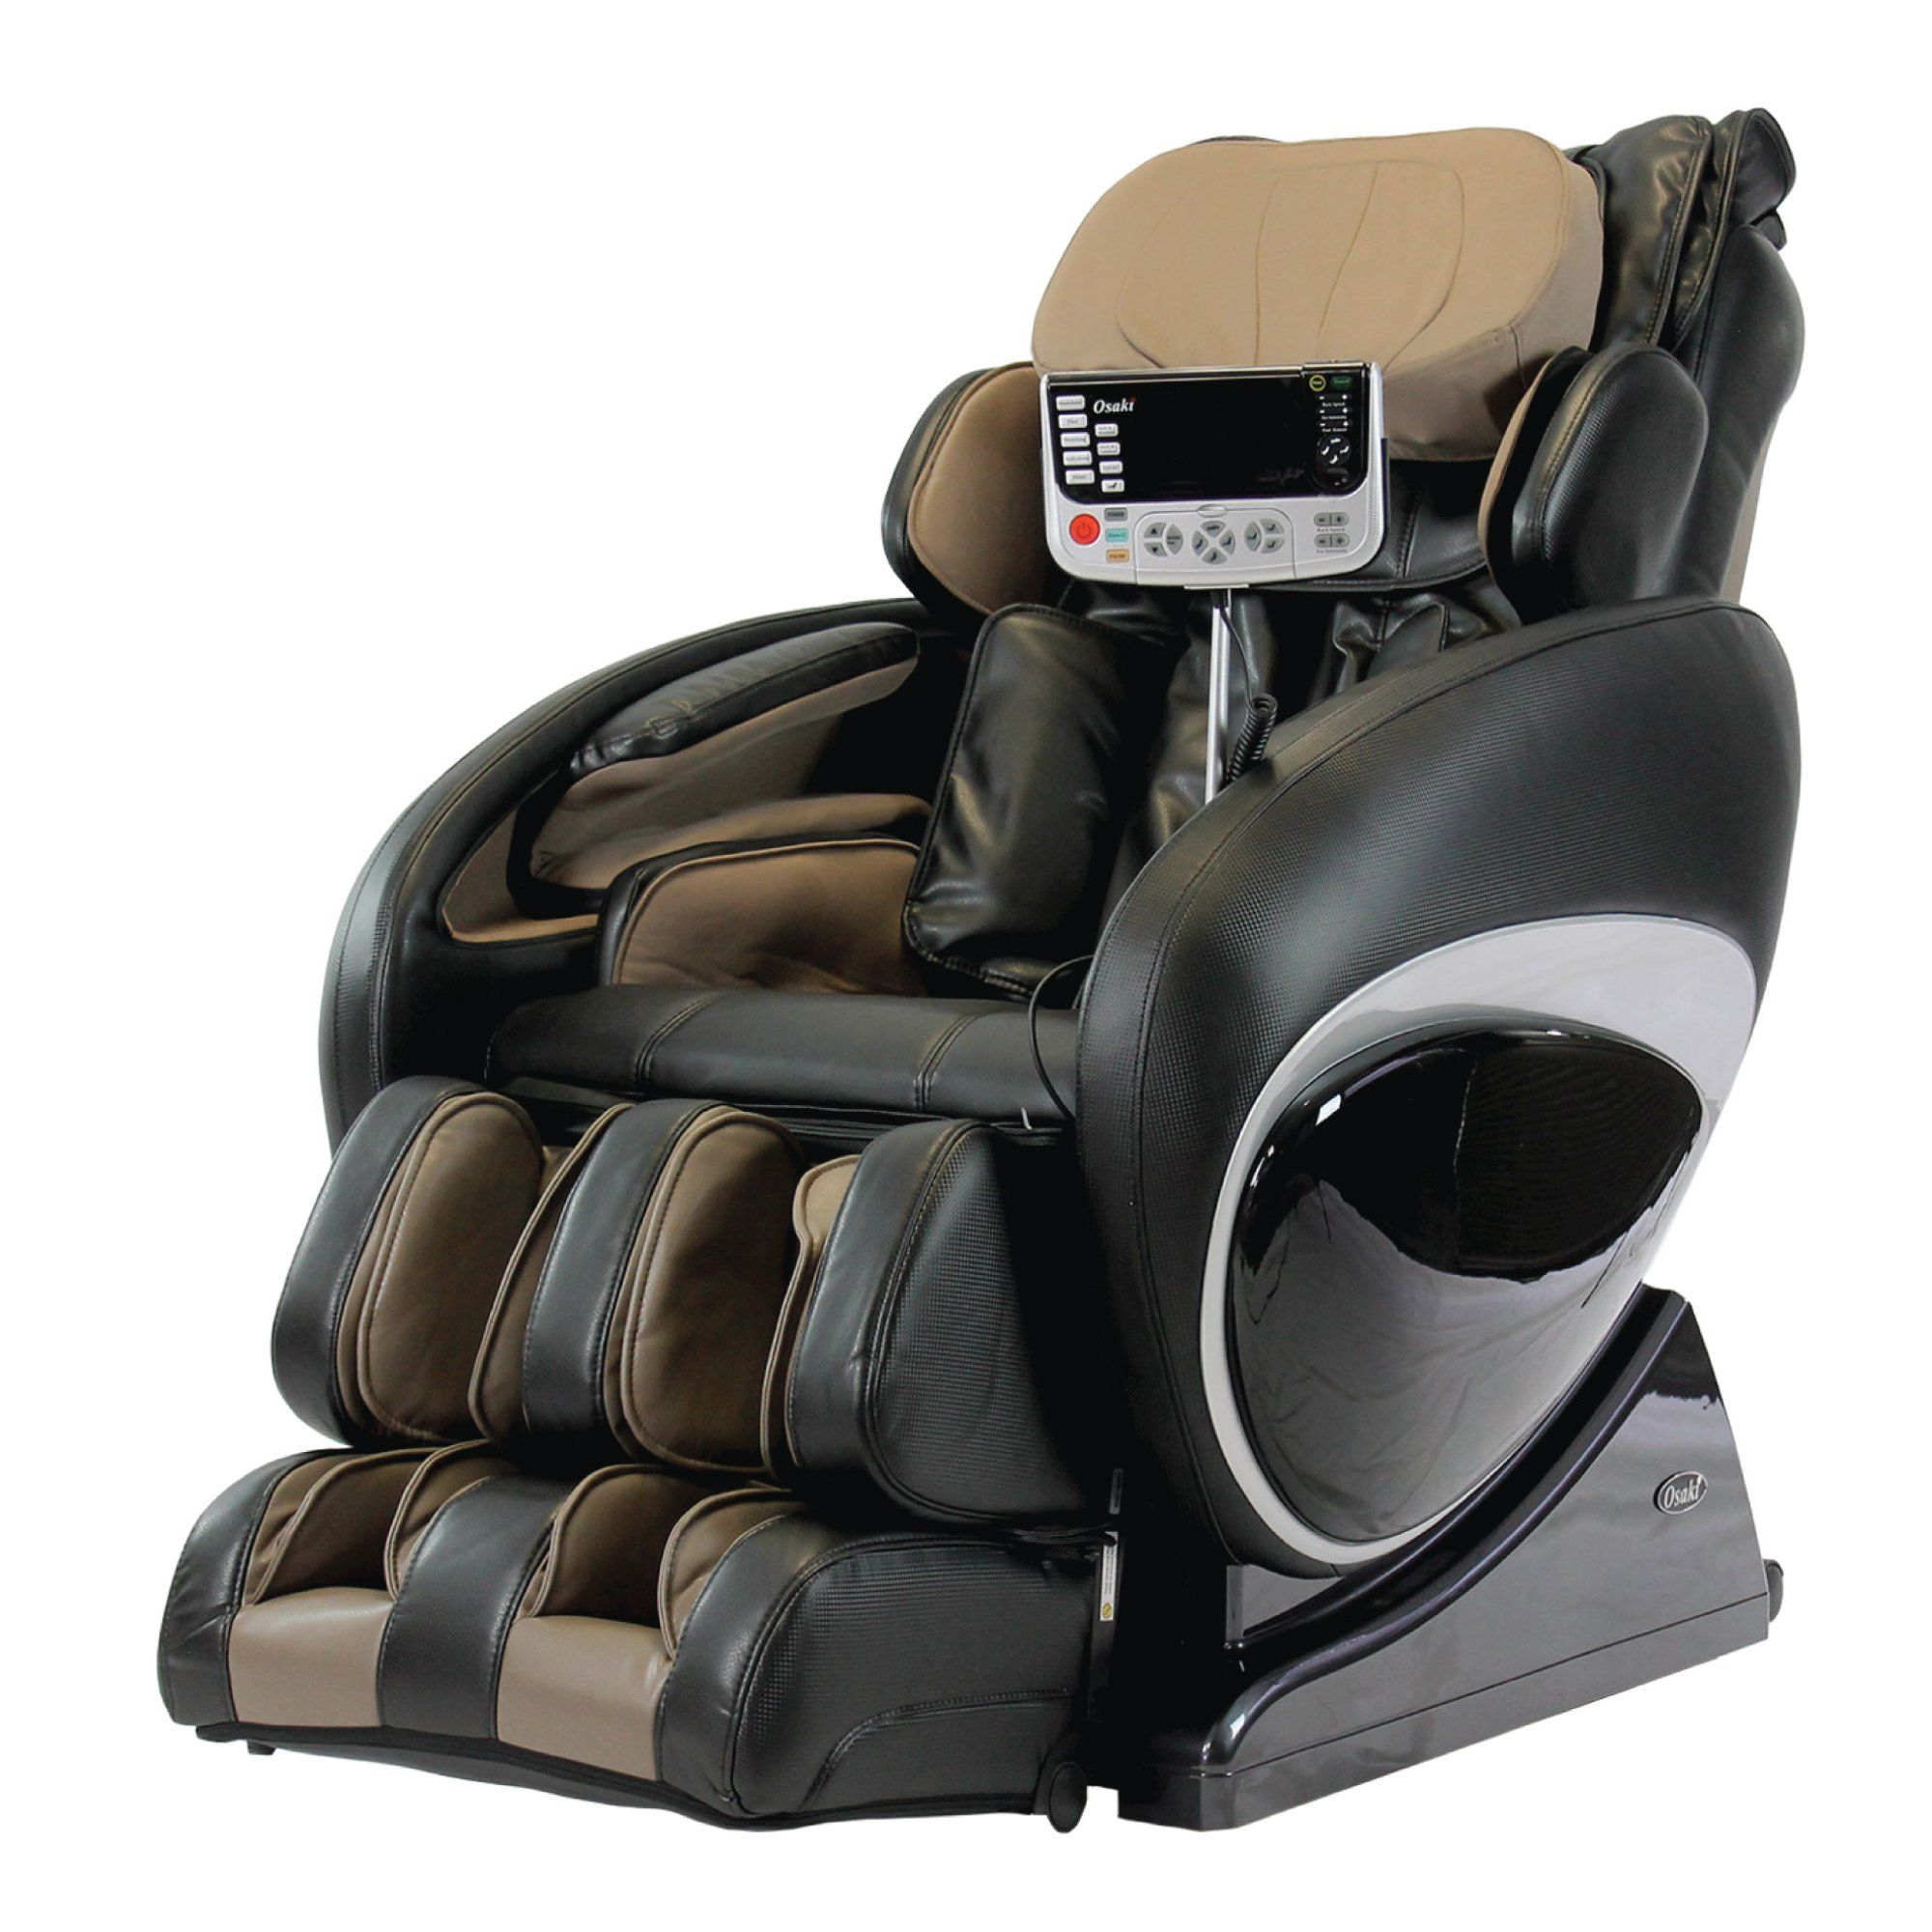 Osaki 4000T Massage Chair Massage chair, Feet roller